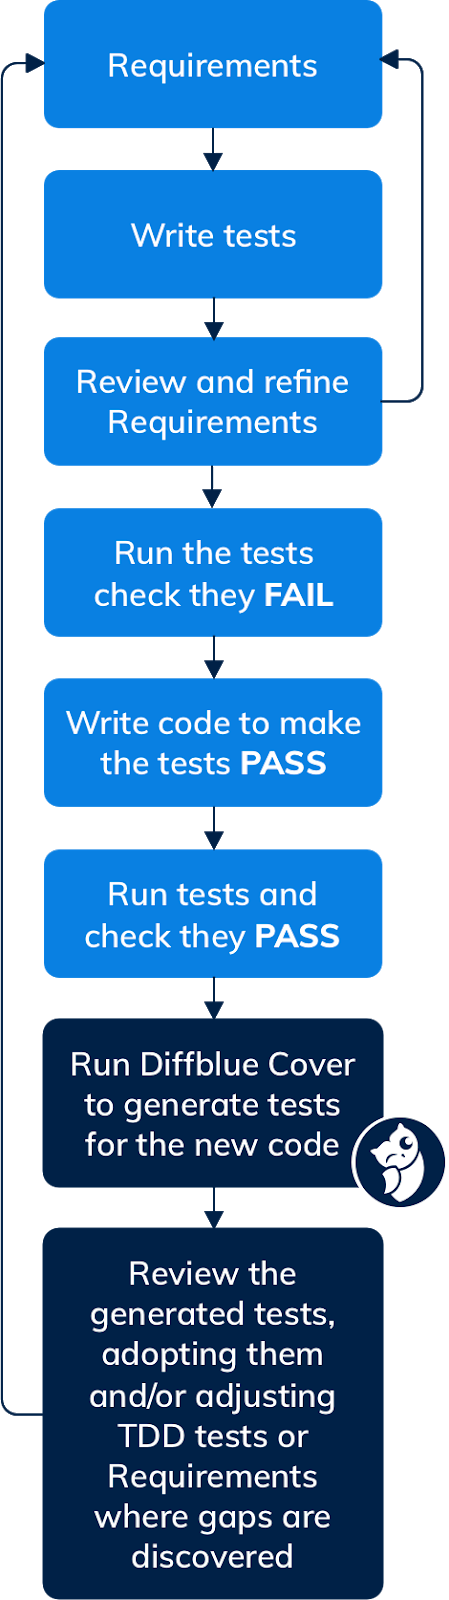 Diagram showing the change to a Test Driven Development workflow when Diffblue Cover is included